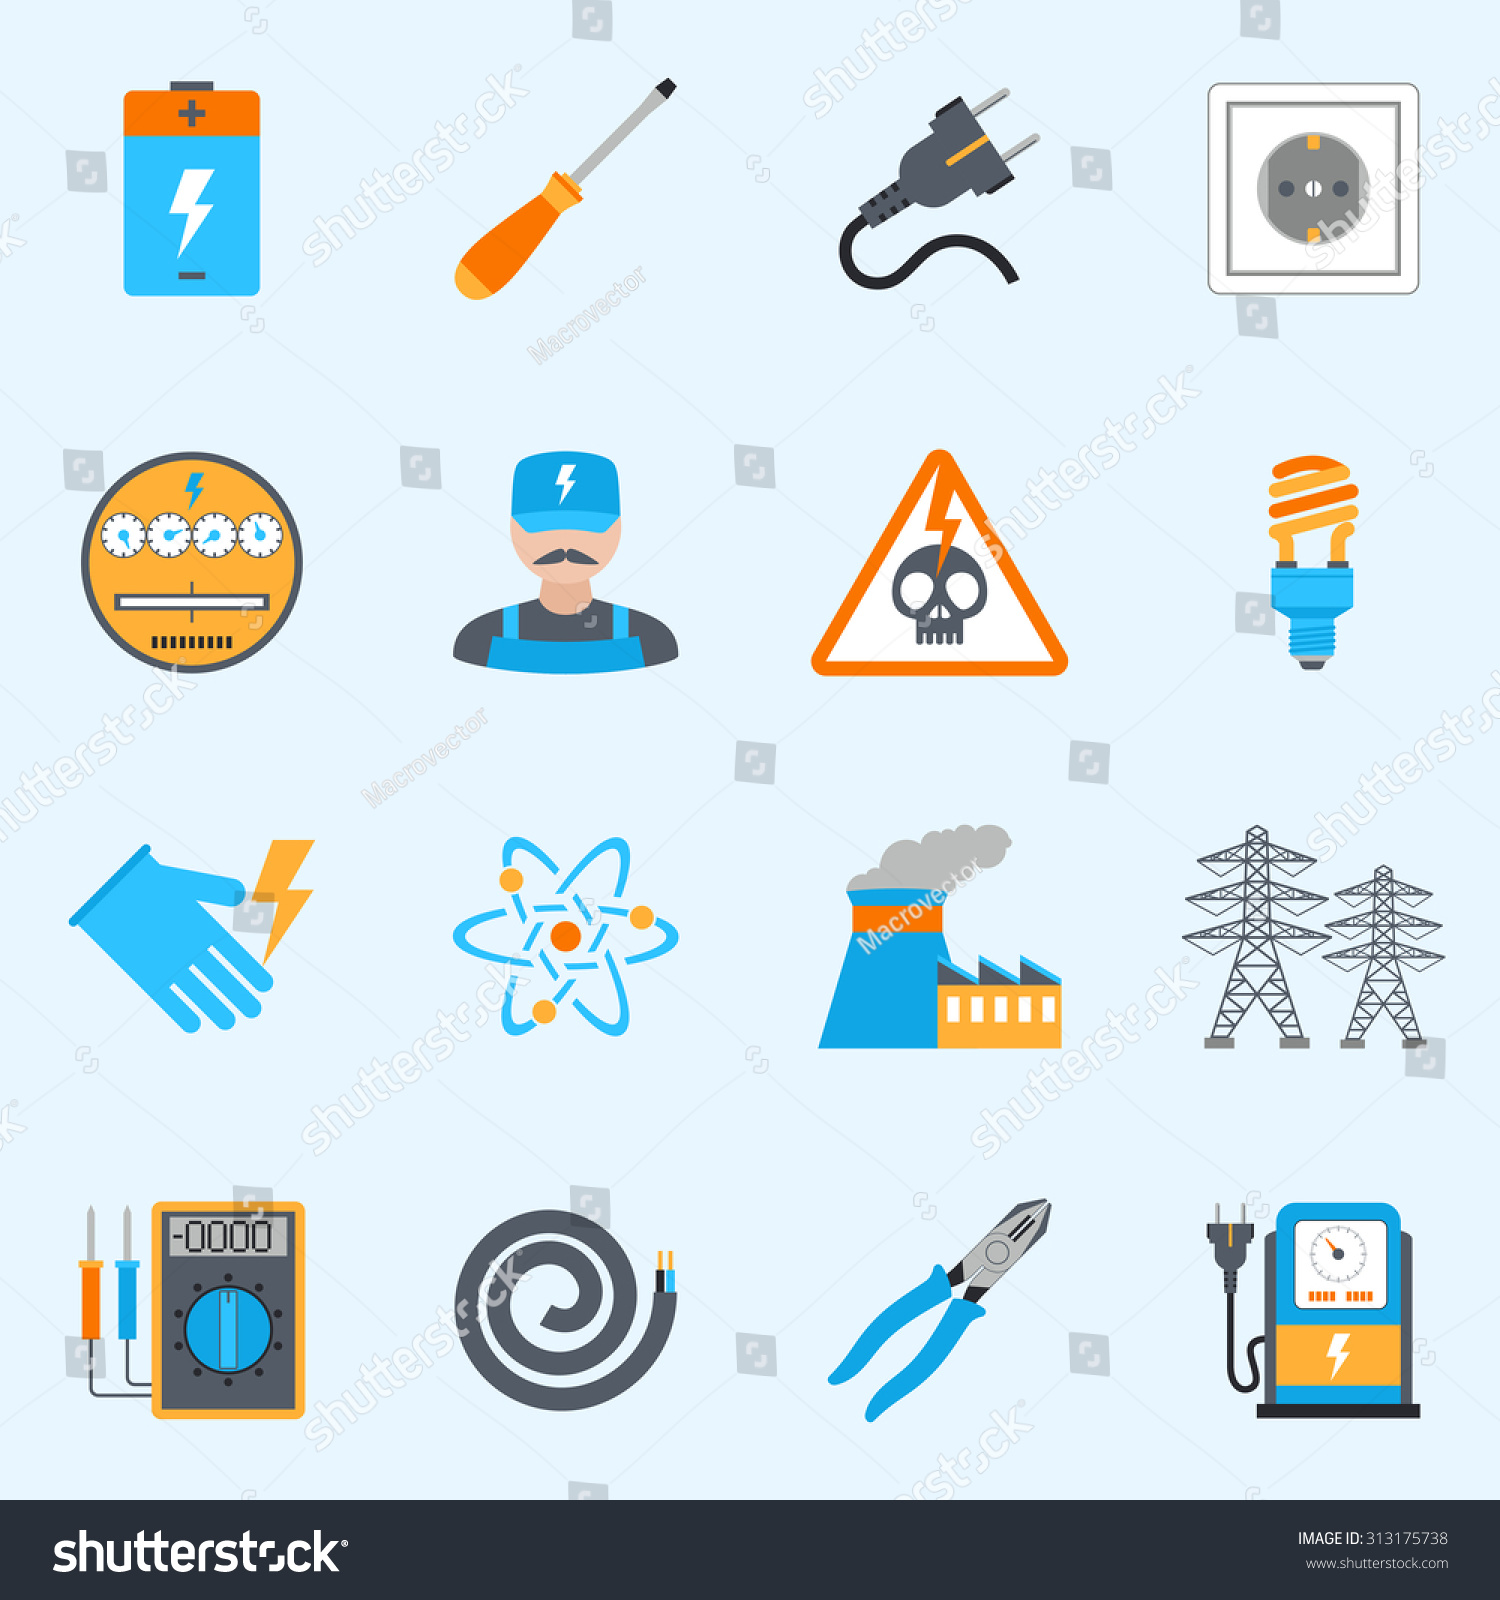 Voltmeter Icon For Wiring Diagram 33 Images Schematic Stock Photo Electricity Icons Set With Wire Screwdriver Electrician Warning Sign Isolated 313175738